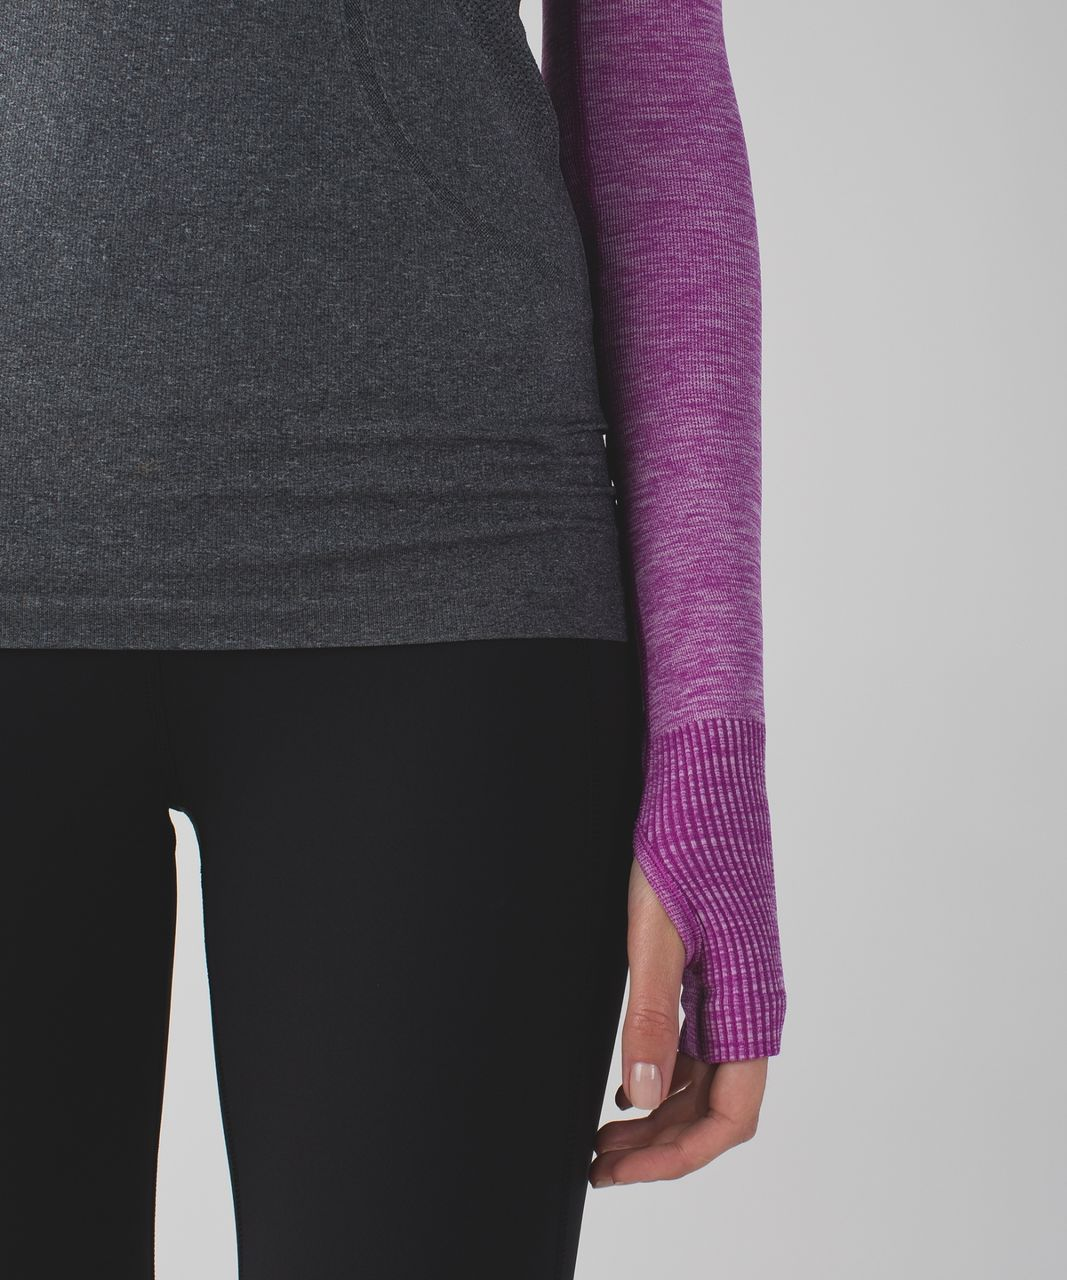 Lululemon Swiftly Arm Warmers - Heathered Ultra Violet